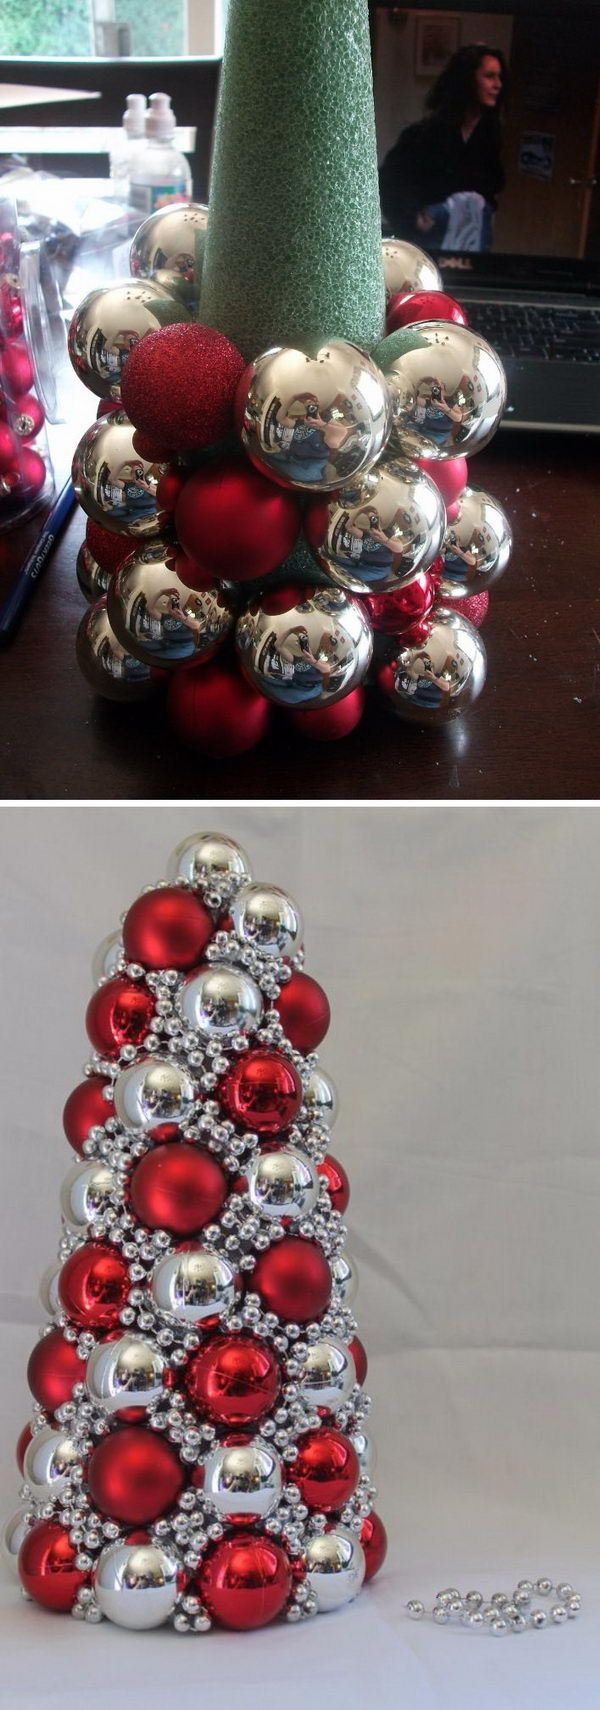 20+ Great Ways To Decorate Your Home With Christmas Ornaments - Styletic